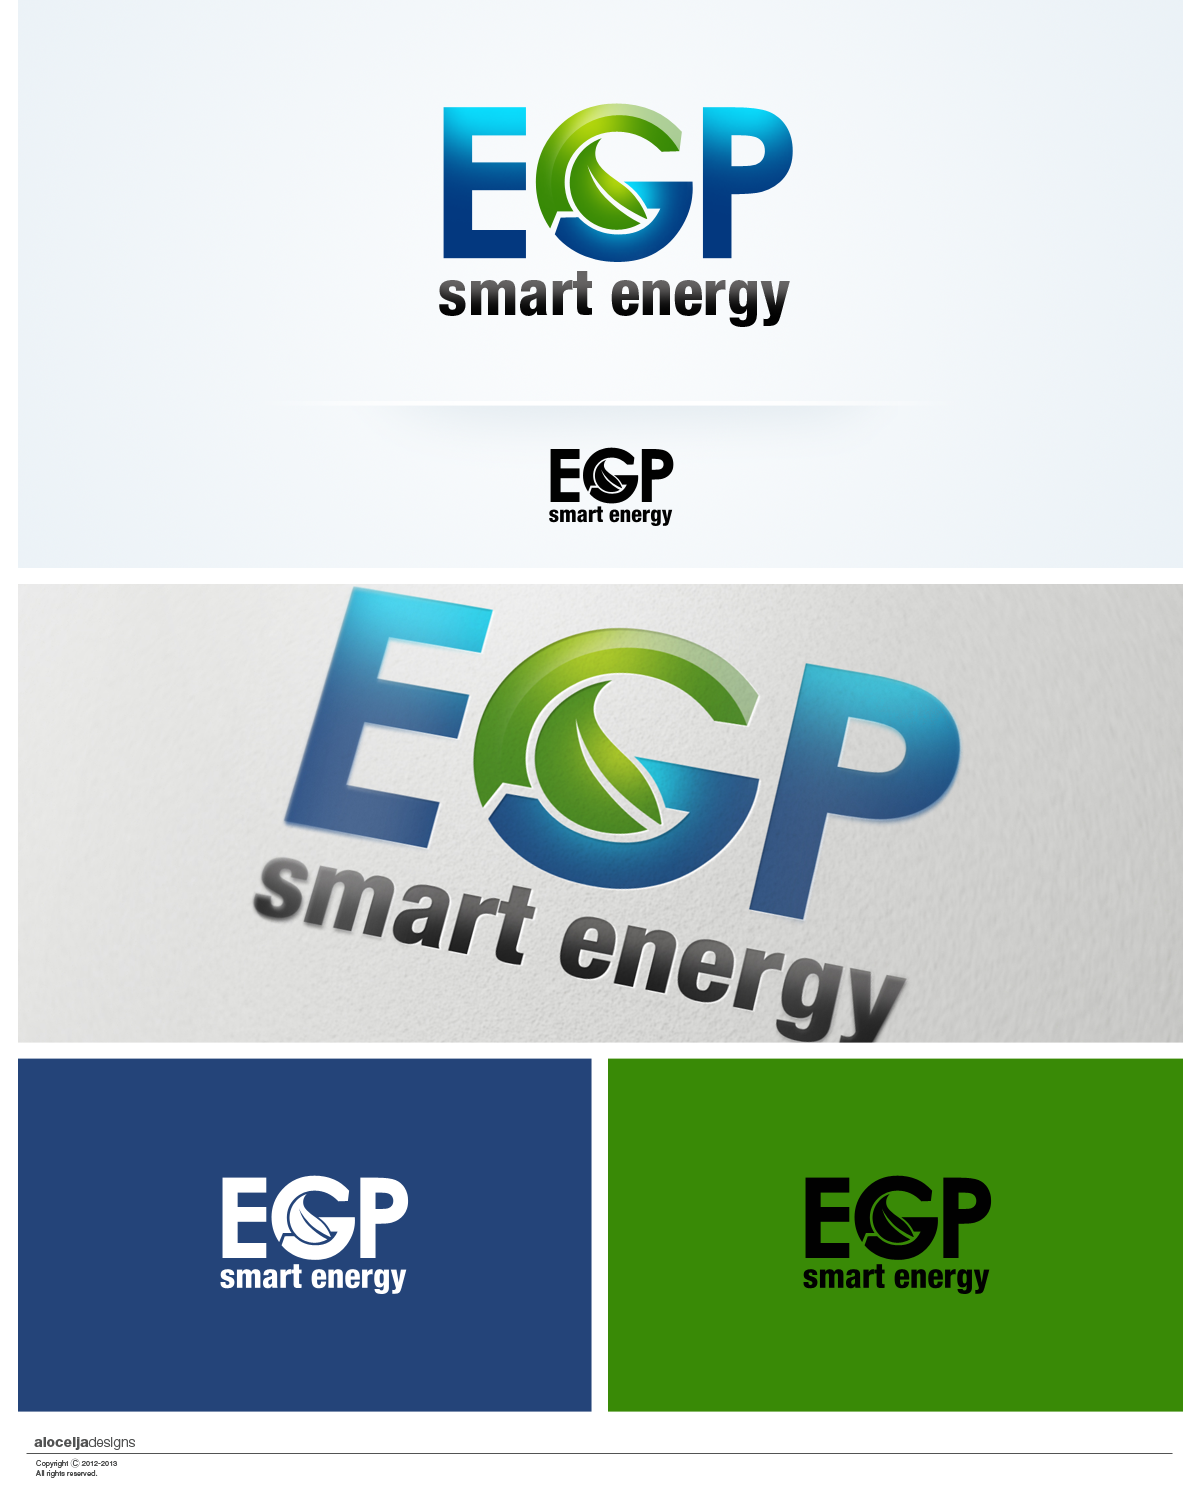 Logo Design by alocelja - Entry No. 97 in the Logo Design Contest Captivating Logo Design for EGP Smart Energy.